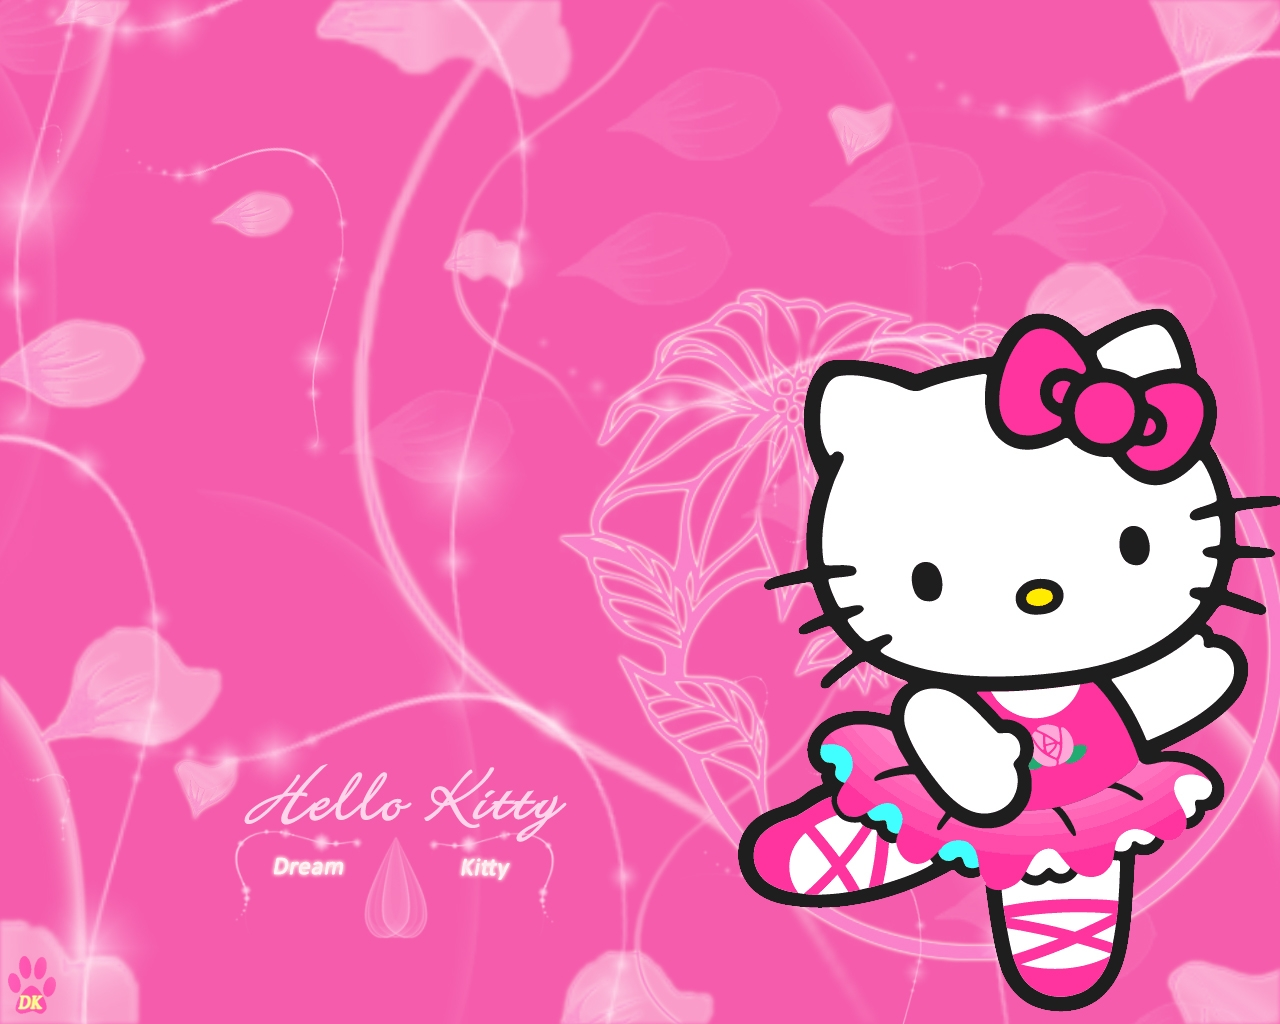 Uncategorized Hello Kitty Online hello kitty online images hd wallpaper and background photos